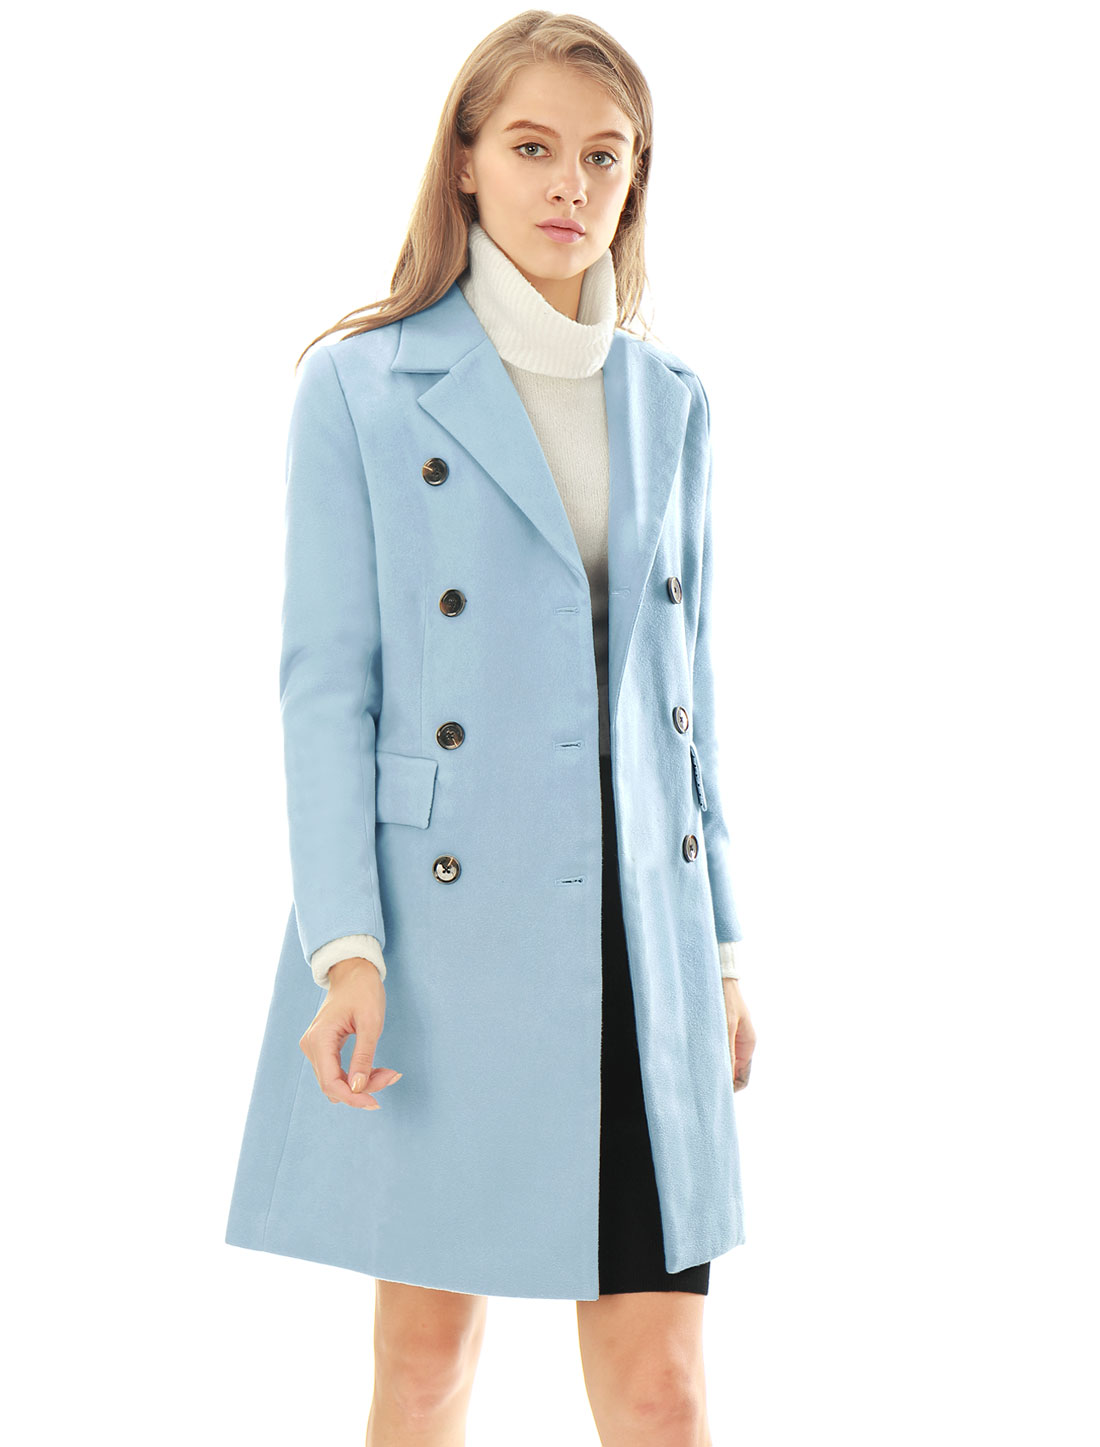 Women Notched Lapel Double Breasted Trench Worsted Coat Blue S